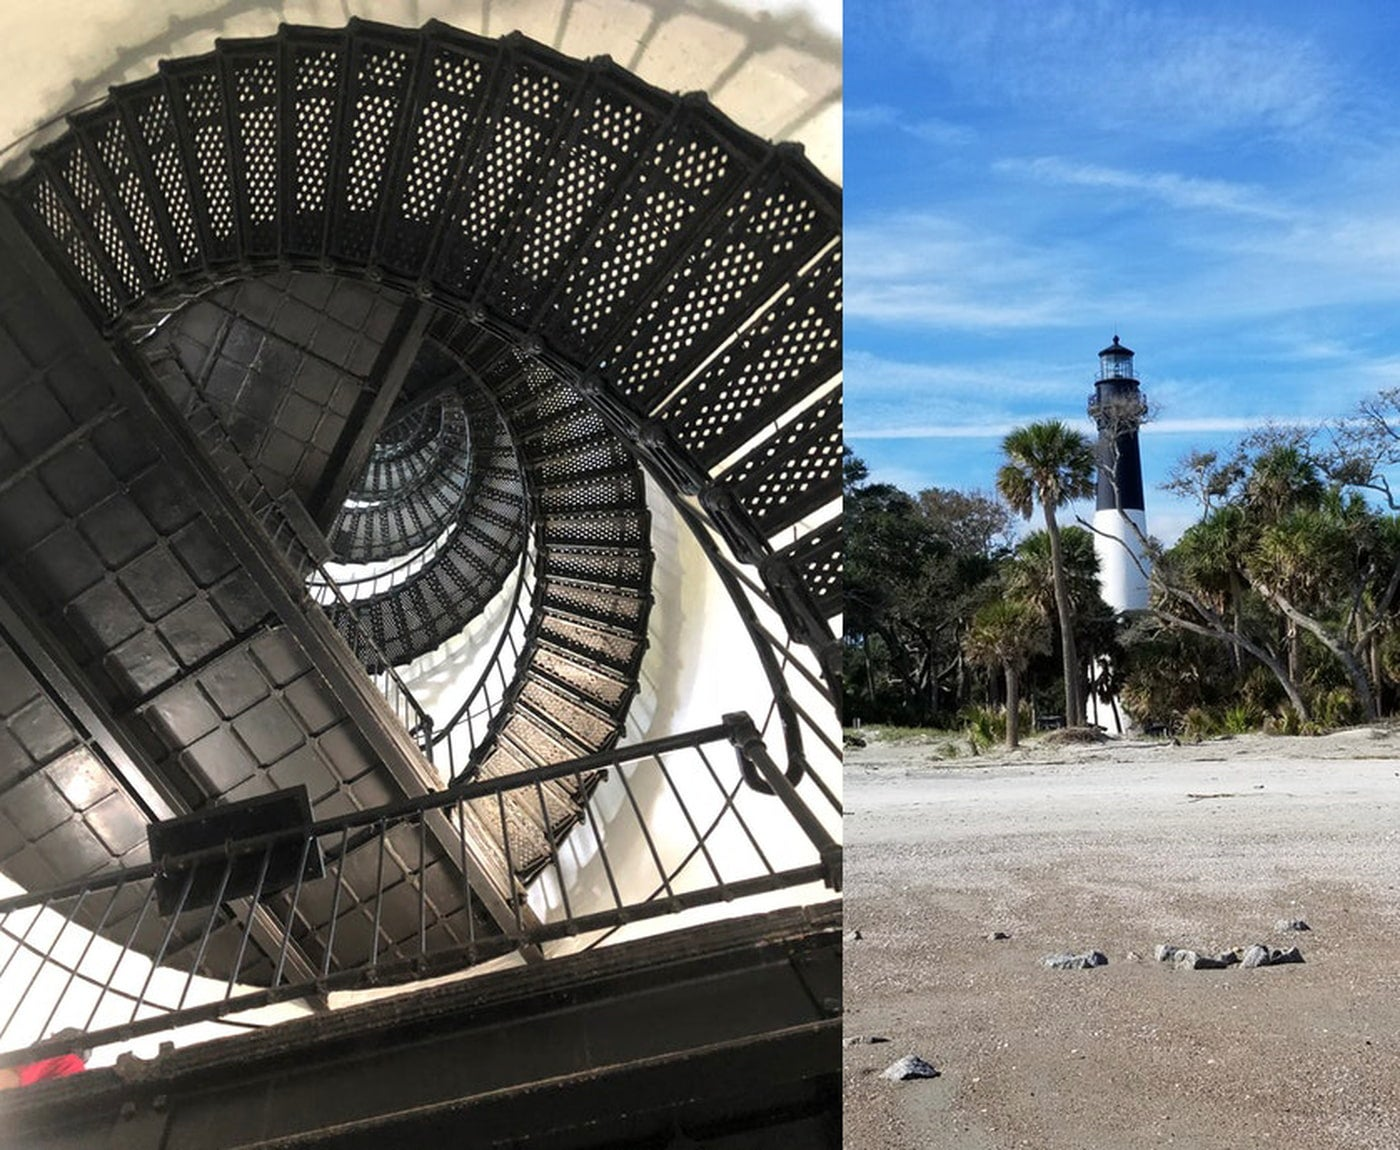 Left upwards view of spiral staircase inside of a light house. Right: Black and white striped light house between palm trees on a beach.